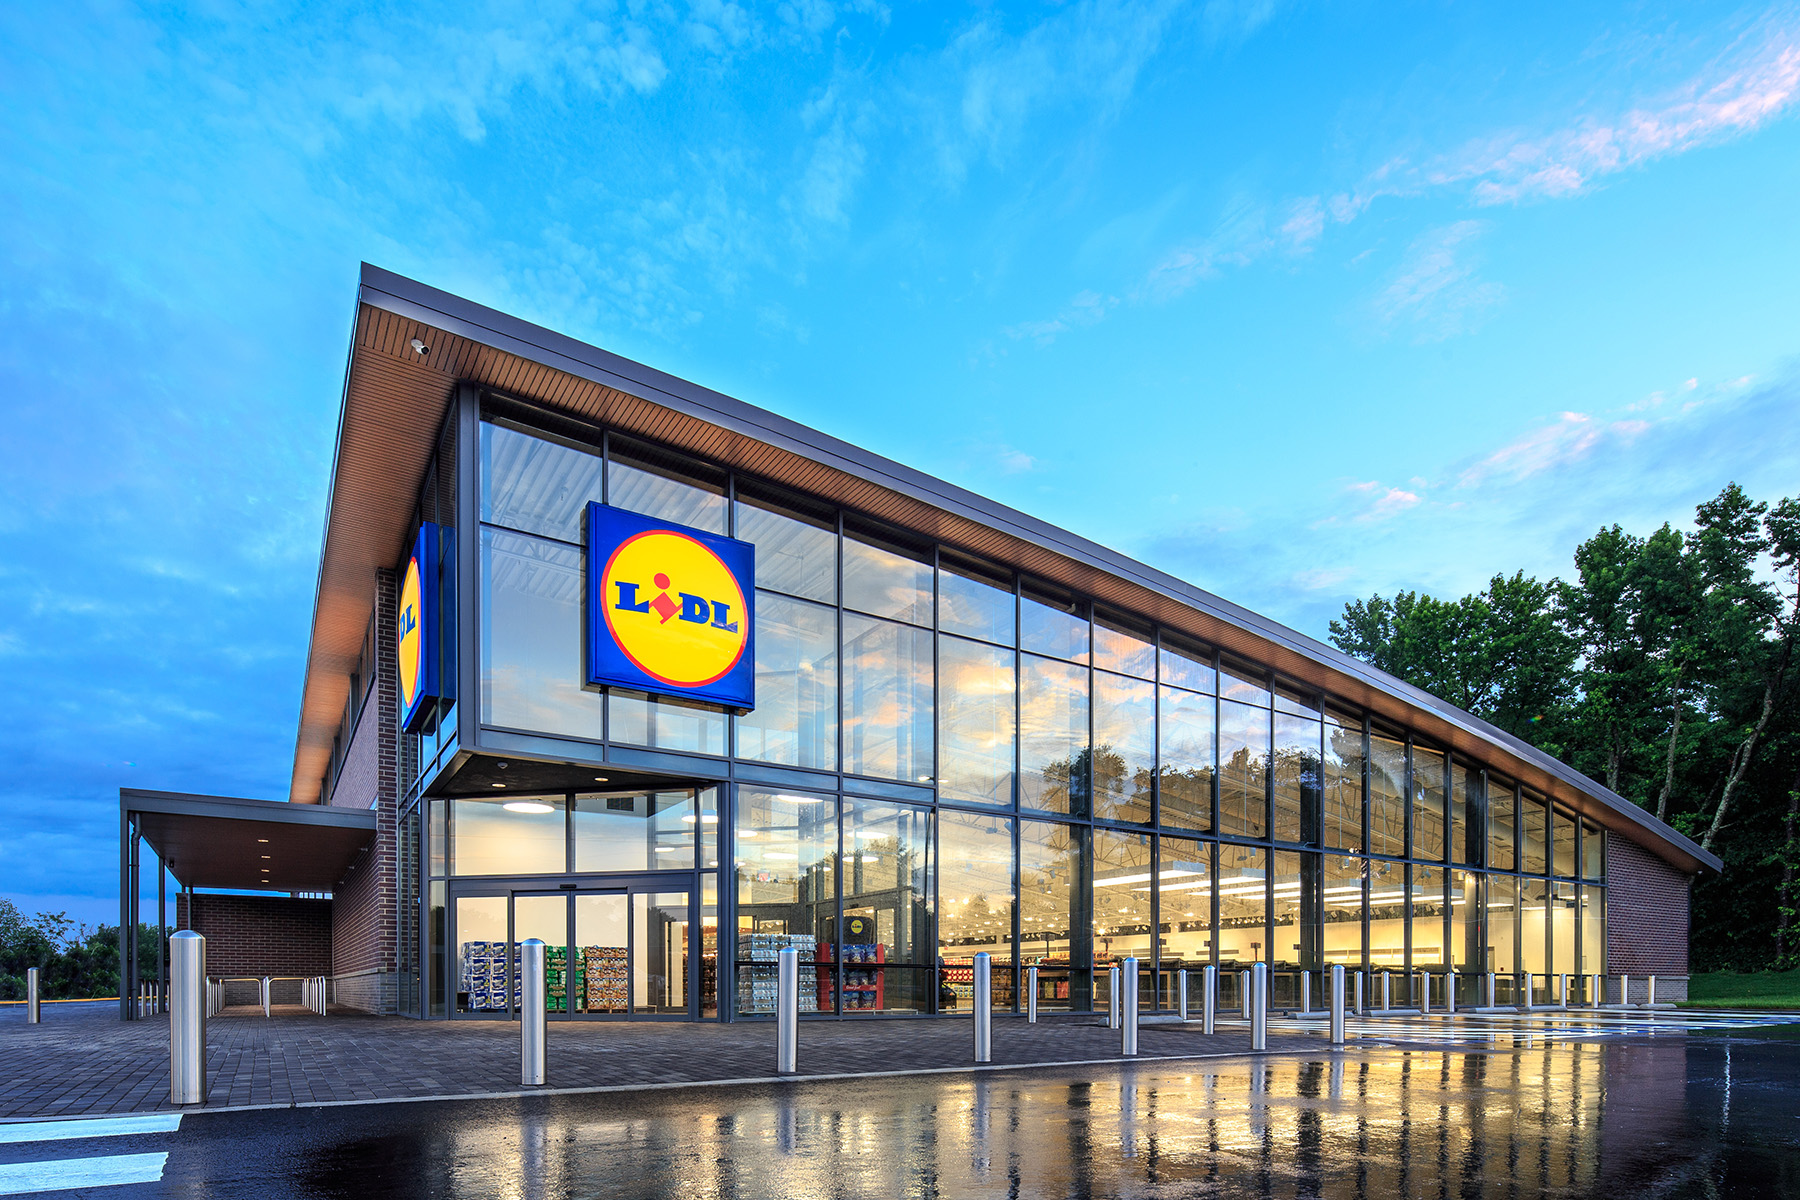 Lidl Is Less Expensive Than Publix, Kroger, Food Lion, Walmart and Aldi